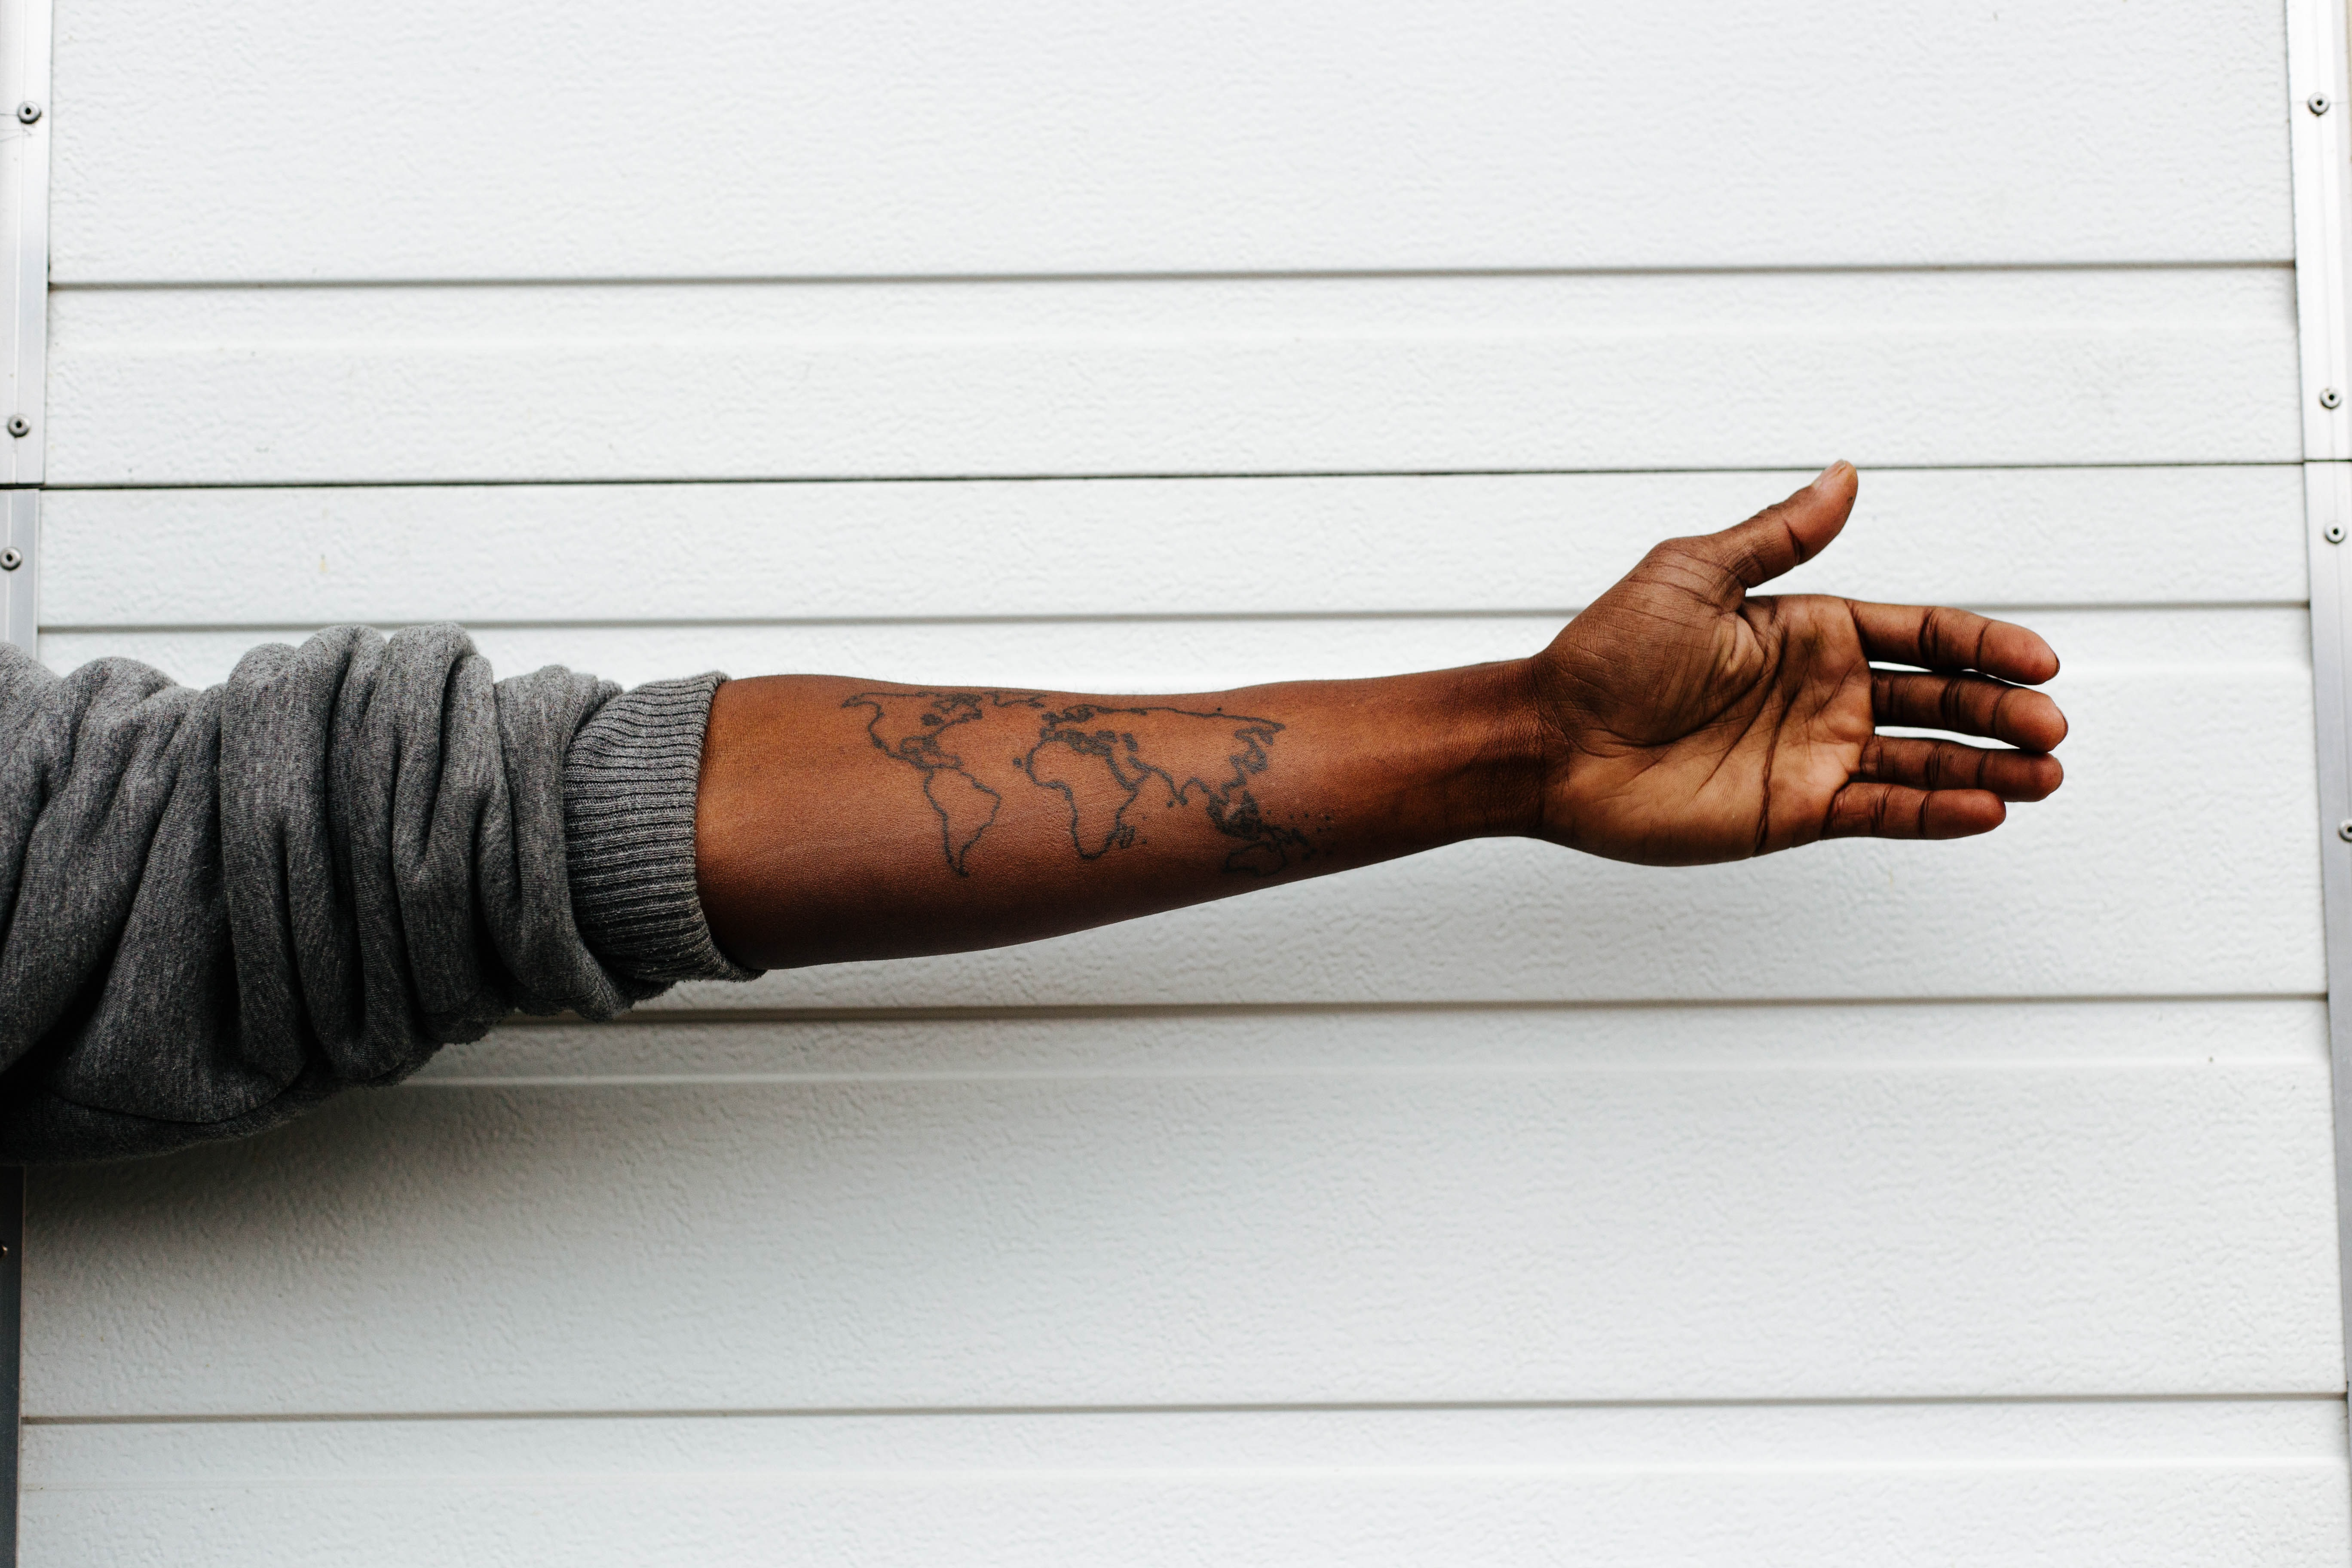 man raising hand with map arm tattoo behind white painted wall